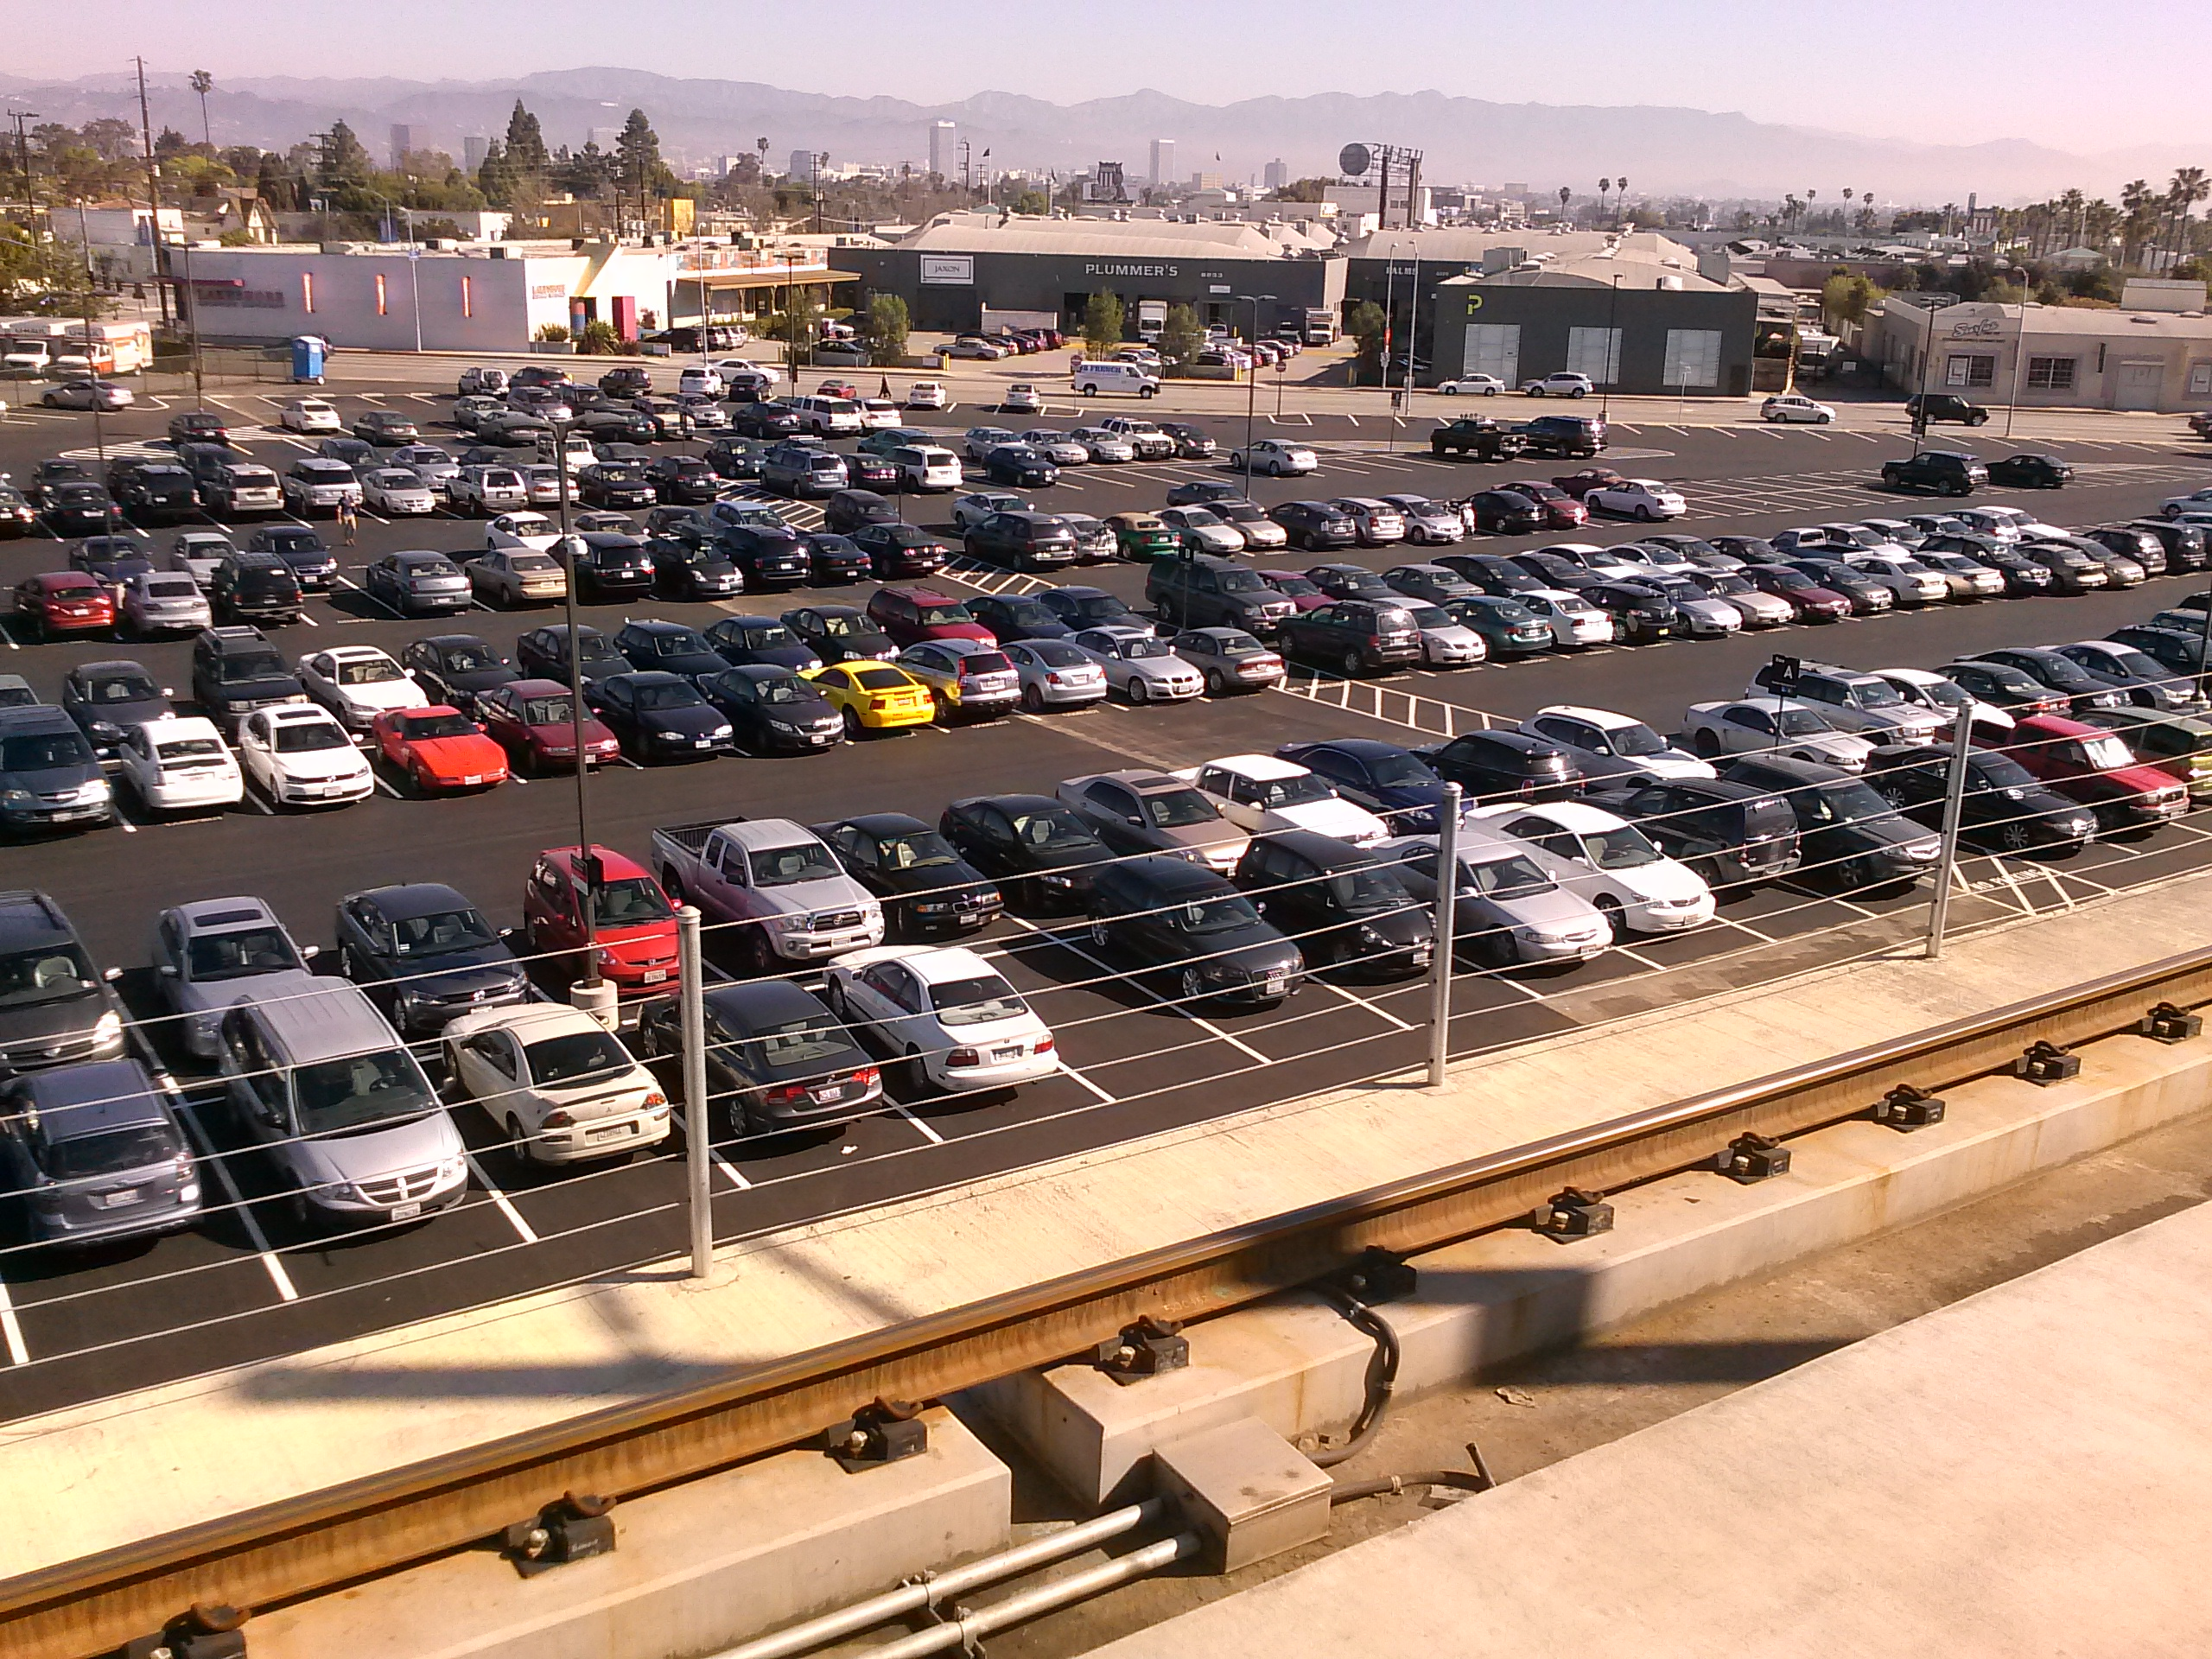 A view of the paved parking lot from the train platform. Photo by Metro.